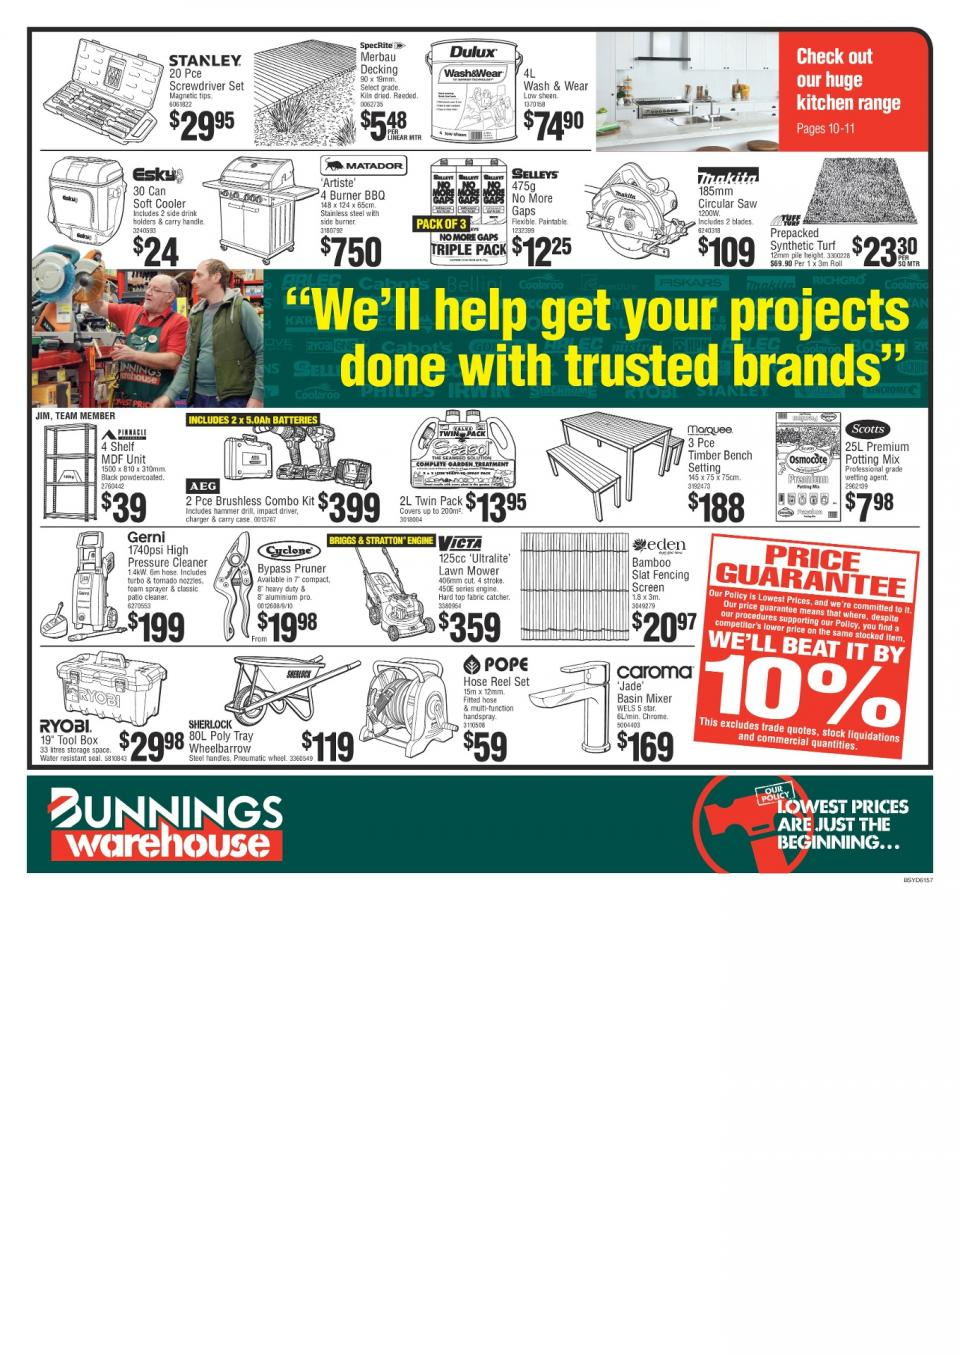 Bunnings Catalogue March 2018